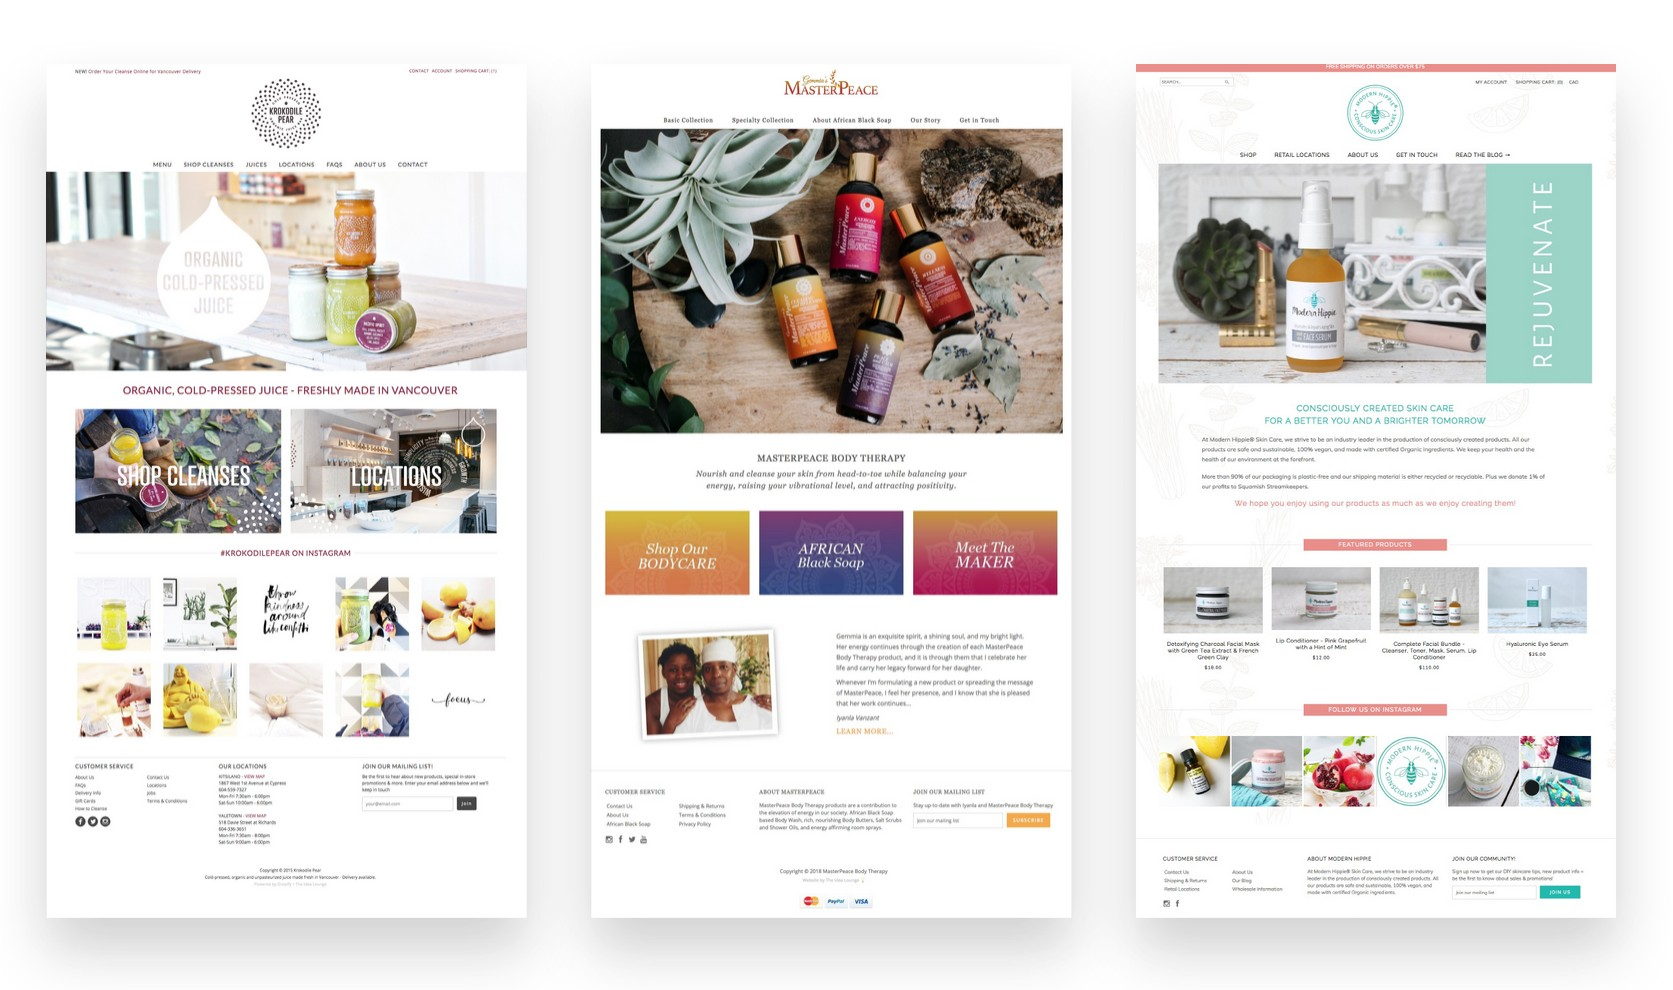 Custom Designed Shopify Websites - The Idea Lounge - Shopify Expert